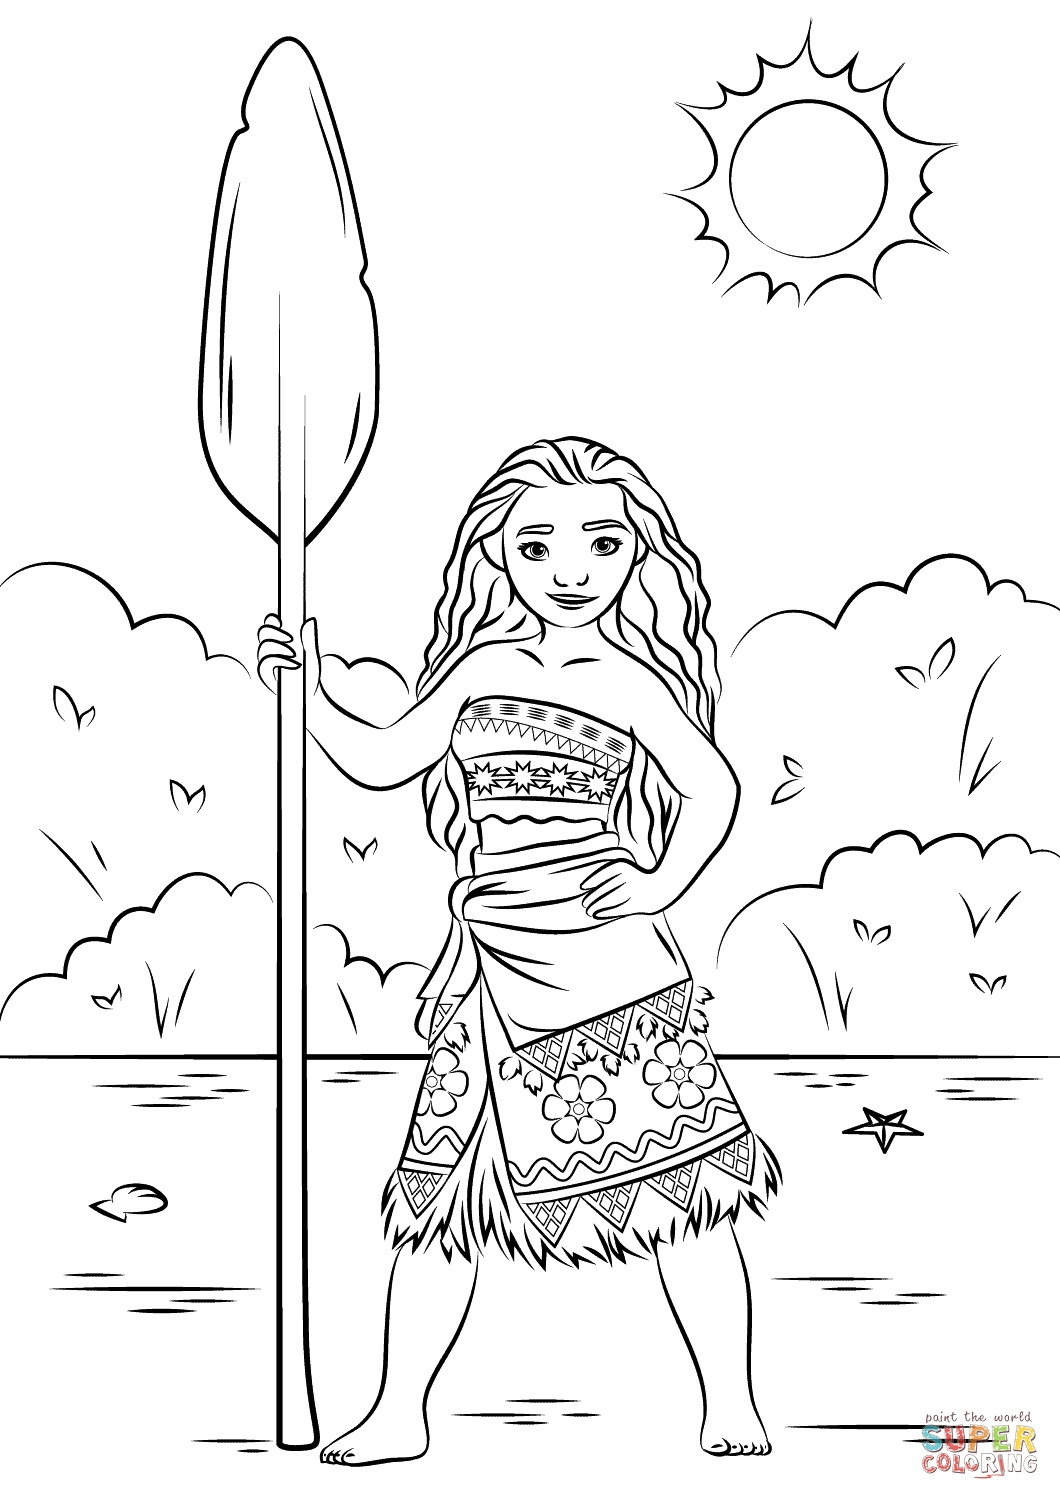 Moana Color Pages - Princess Moana Coloring Page